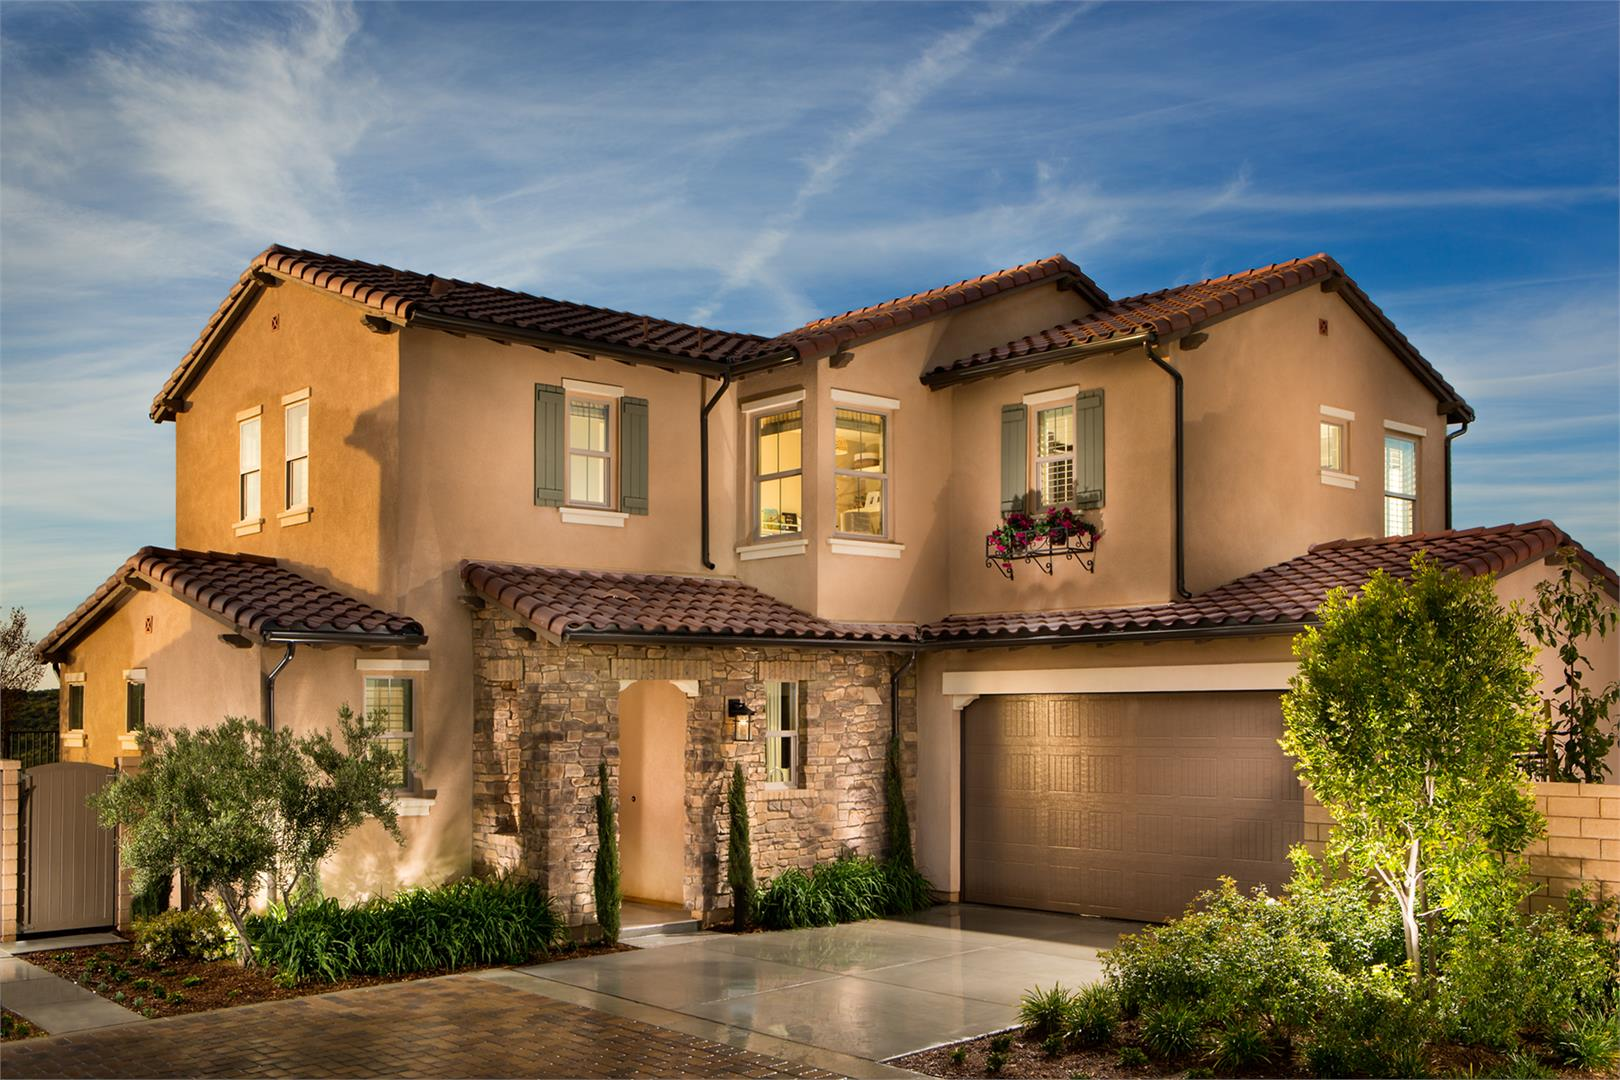 Baker Ranch Crestline In Lake Forest Ca Prices Plans Availability